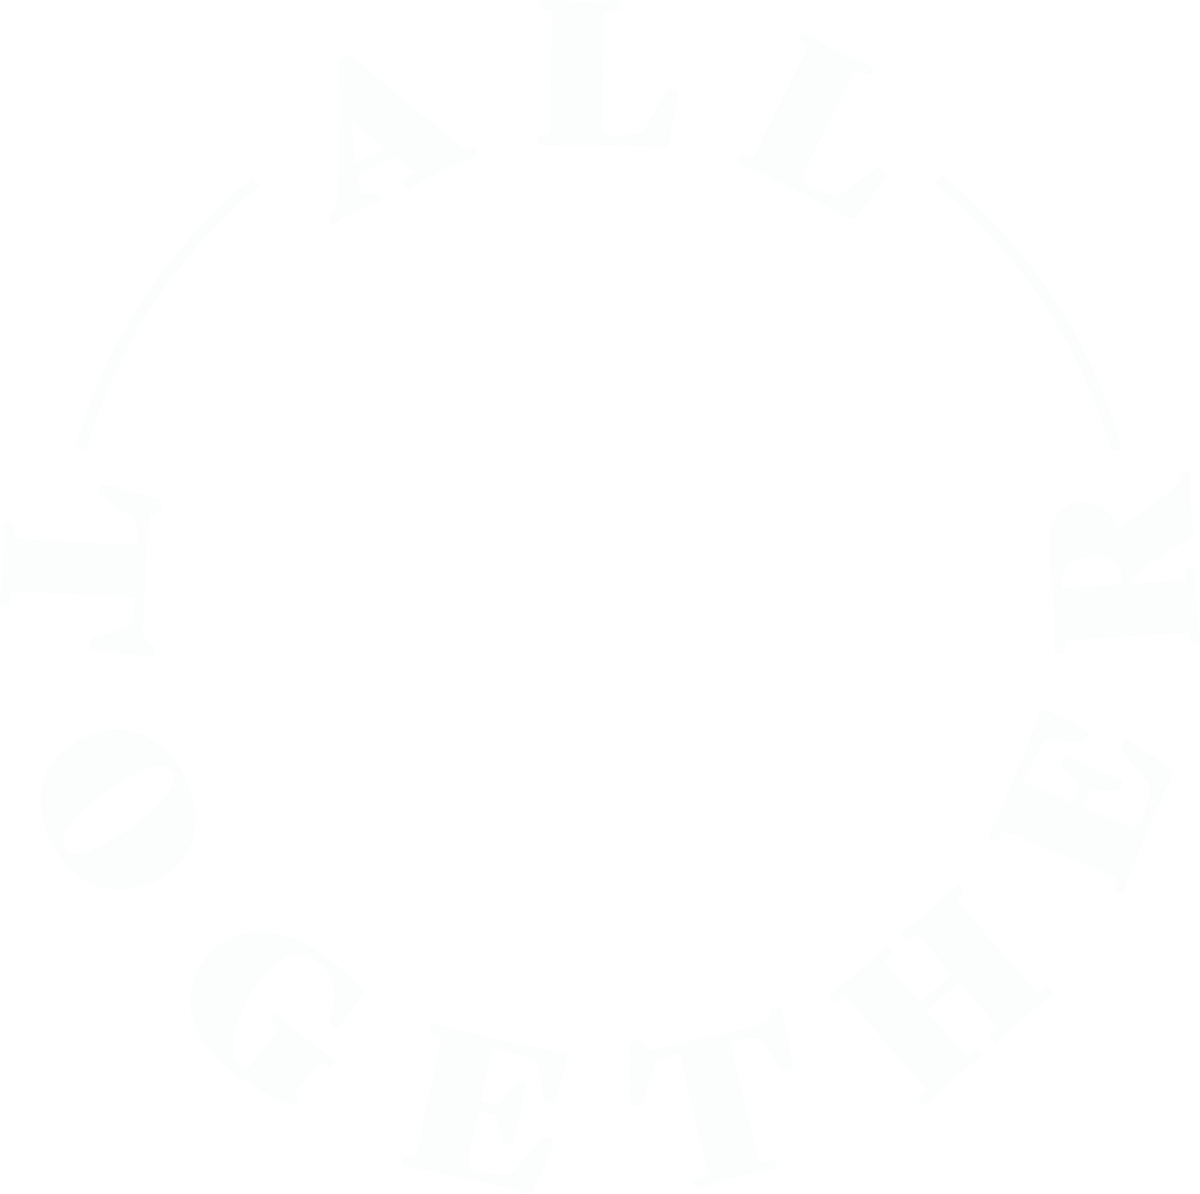 All Together Logotype